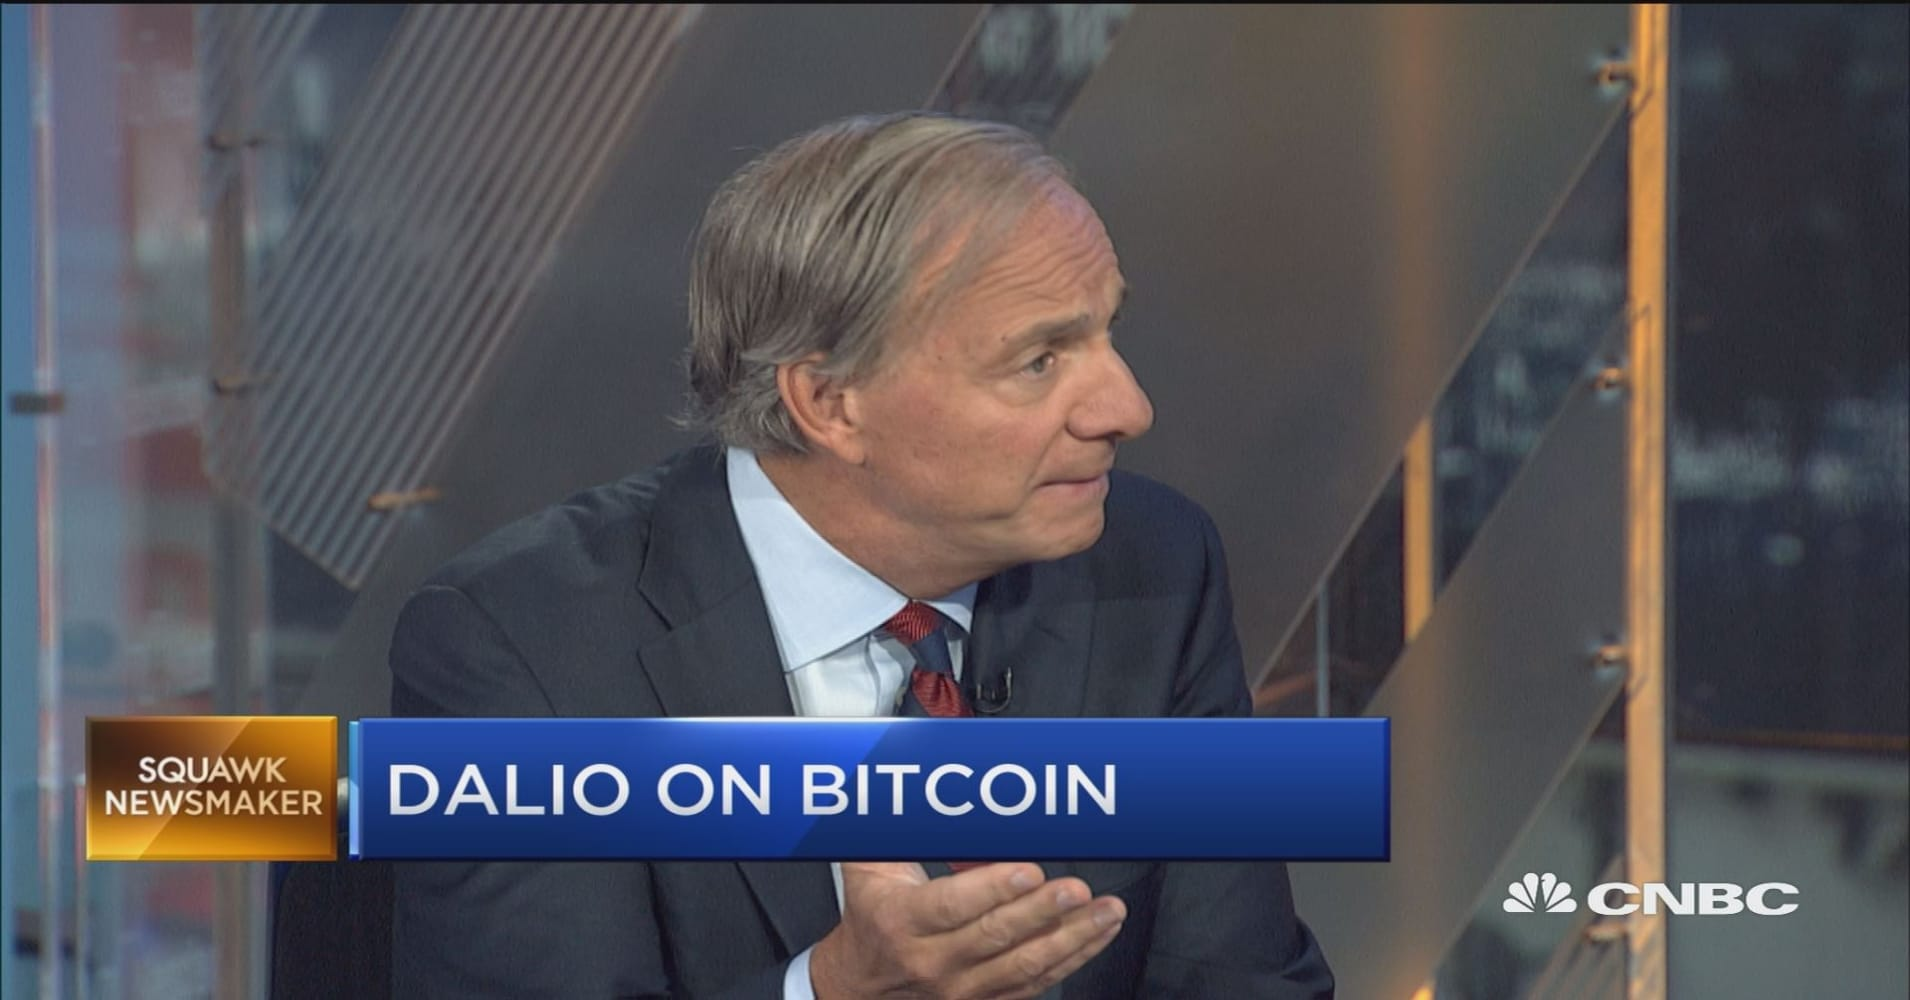 Bitcoin Is A Bubble but Gold Is Money Says World's Biggest Hedge Fund Manager Bitcoin Is A Bubble but Gold Is Money Says World's Biggest Hedge Fund Manager 104718262 3ED1 SB DalioBitcoin 091917